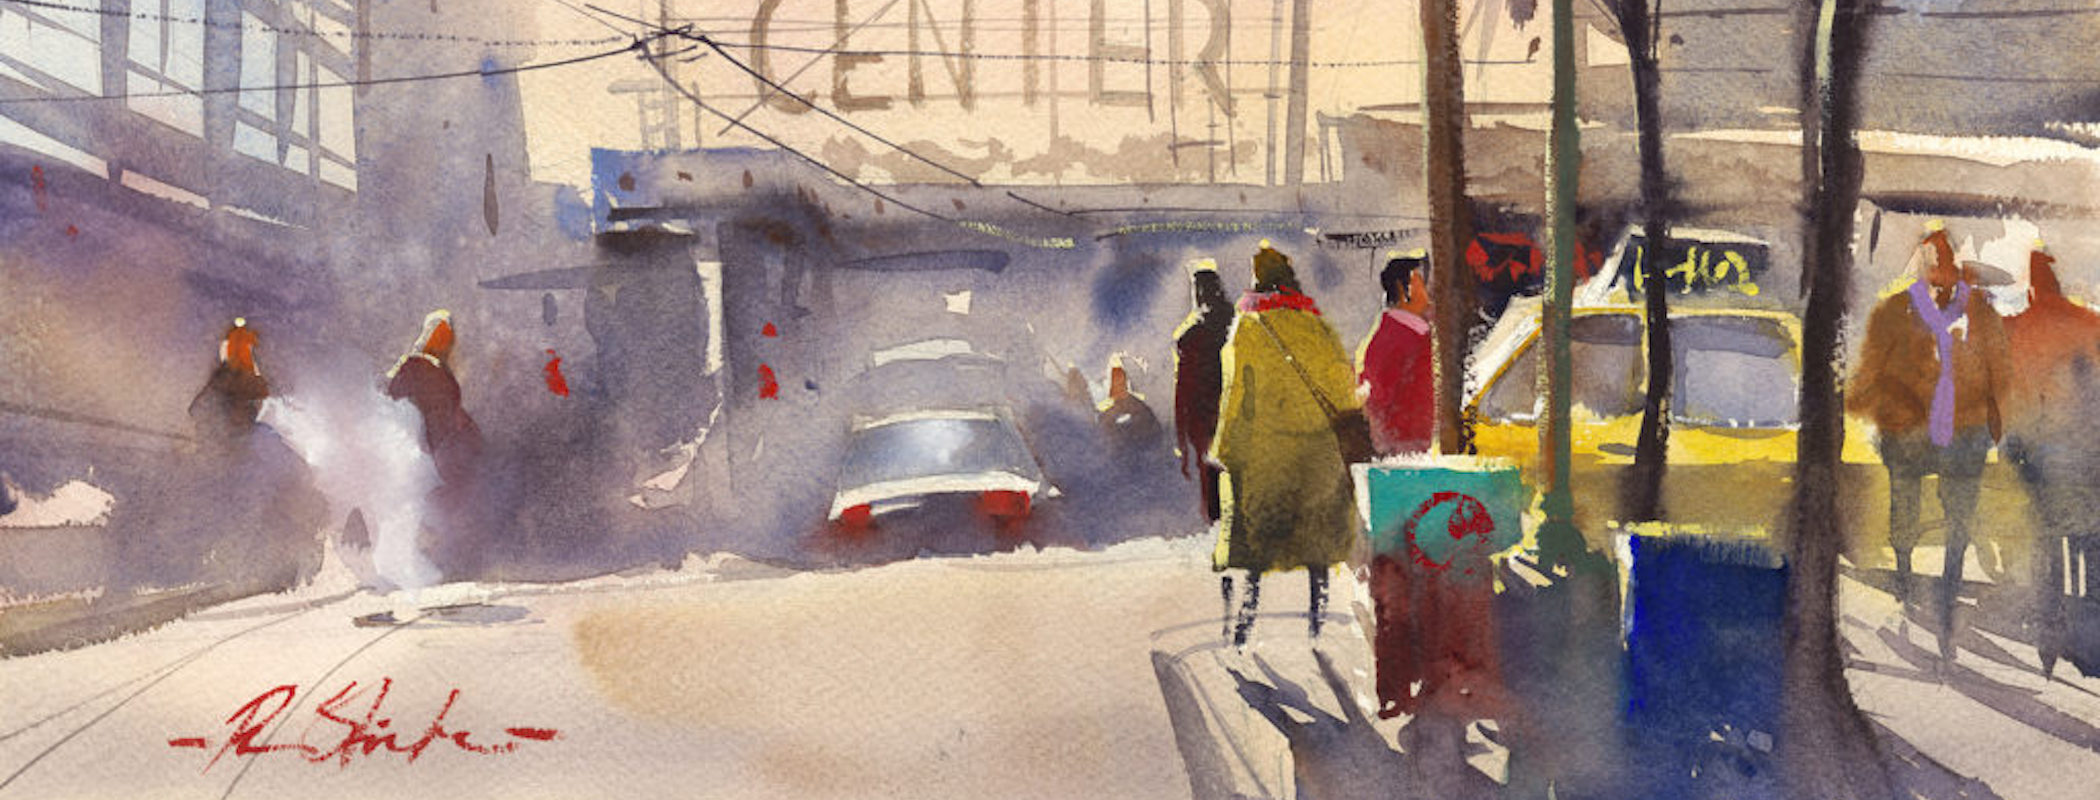 Ron Stocke Workshop - Bring Energy and Focus to your Watercolors!